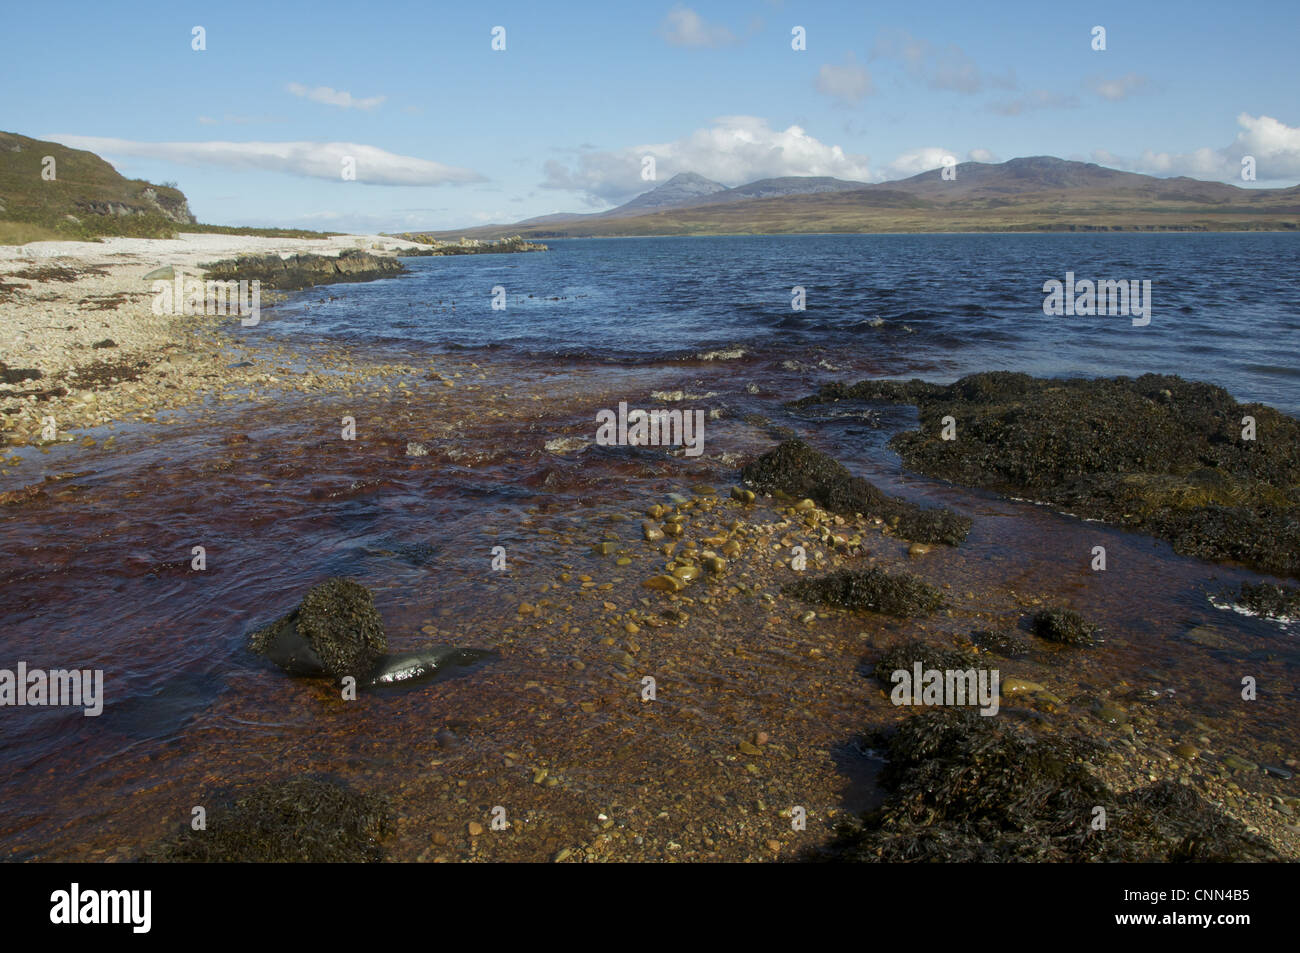 Peat stained river flowing into coastal strait, Glen Logan, Islay Sound, Islay, Inner Hebrides, Scotland, september - Stock Image